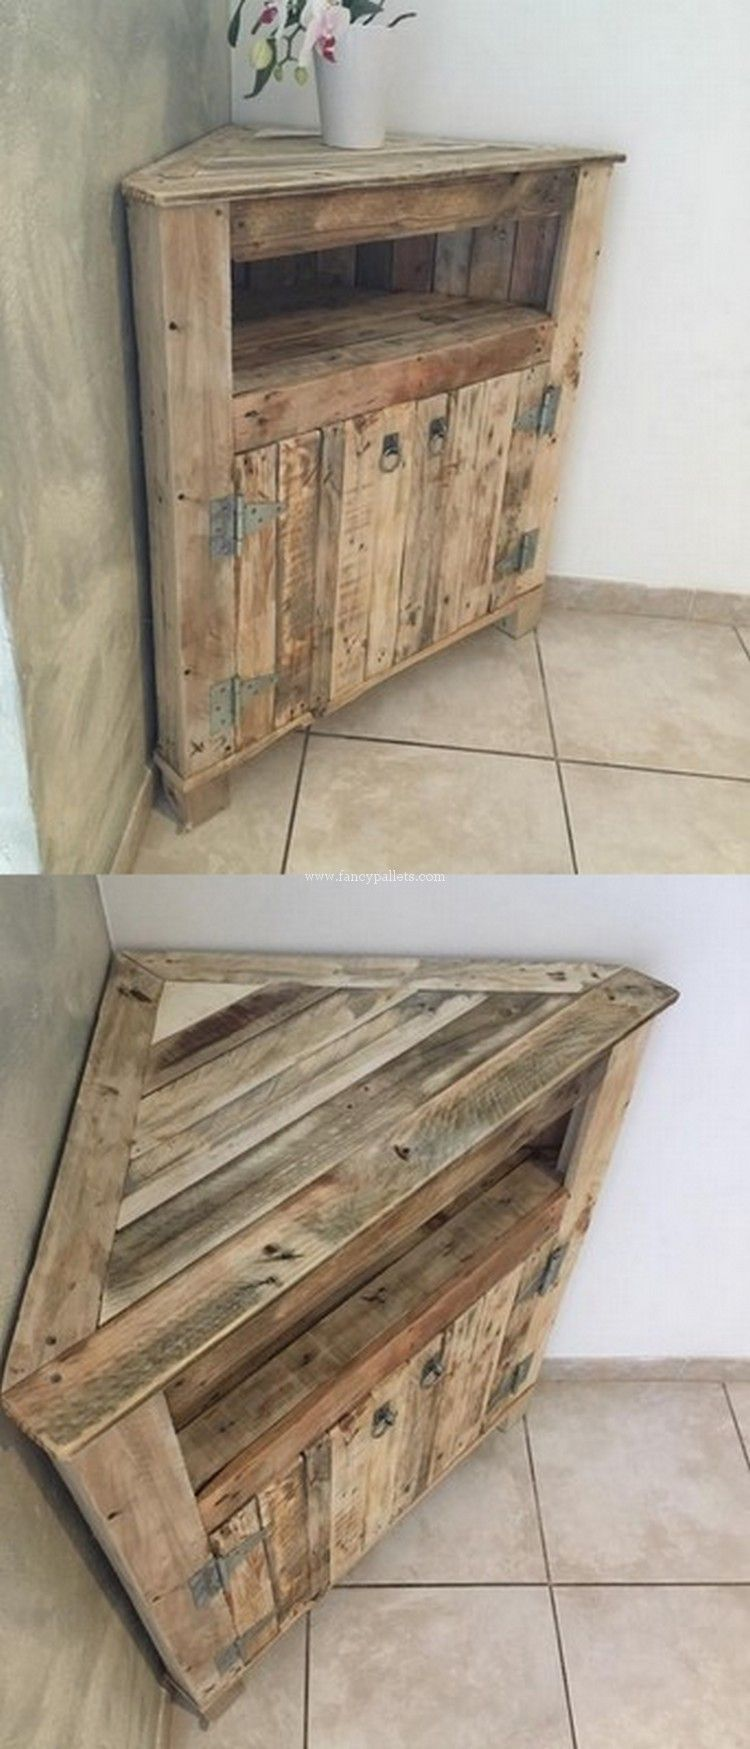 Pallet Furniture Gallery Wood Pallet Projects Diy Pallet